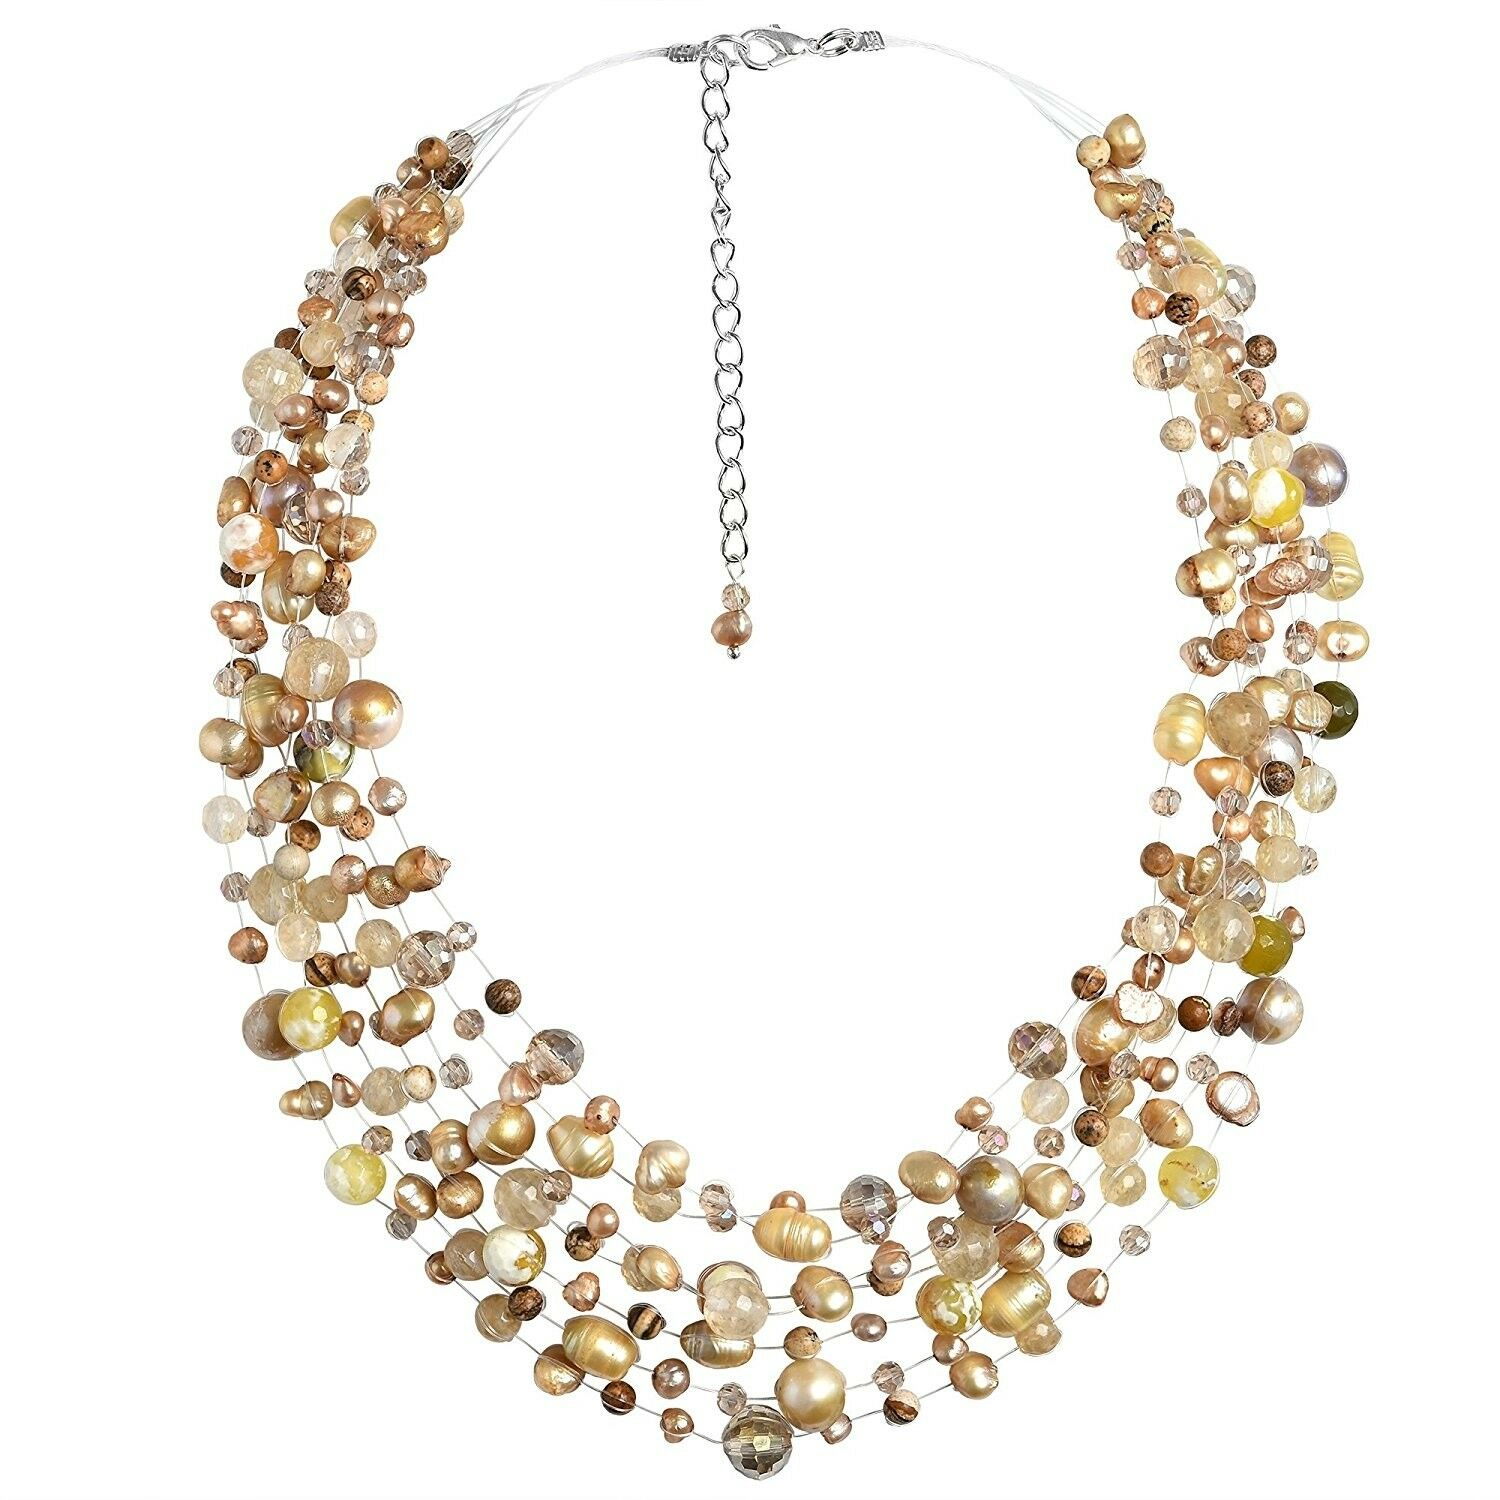 Classy Cascades Of Cultured Freshwater Pearl And Reconstructed Agate Pearl